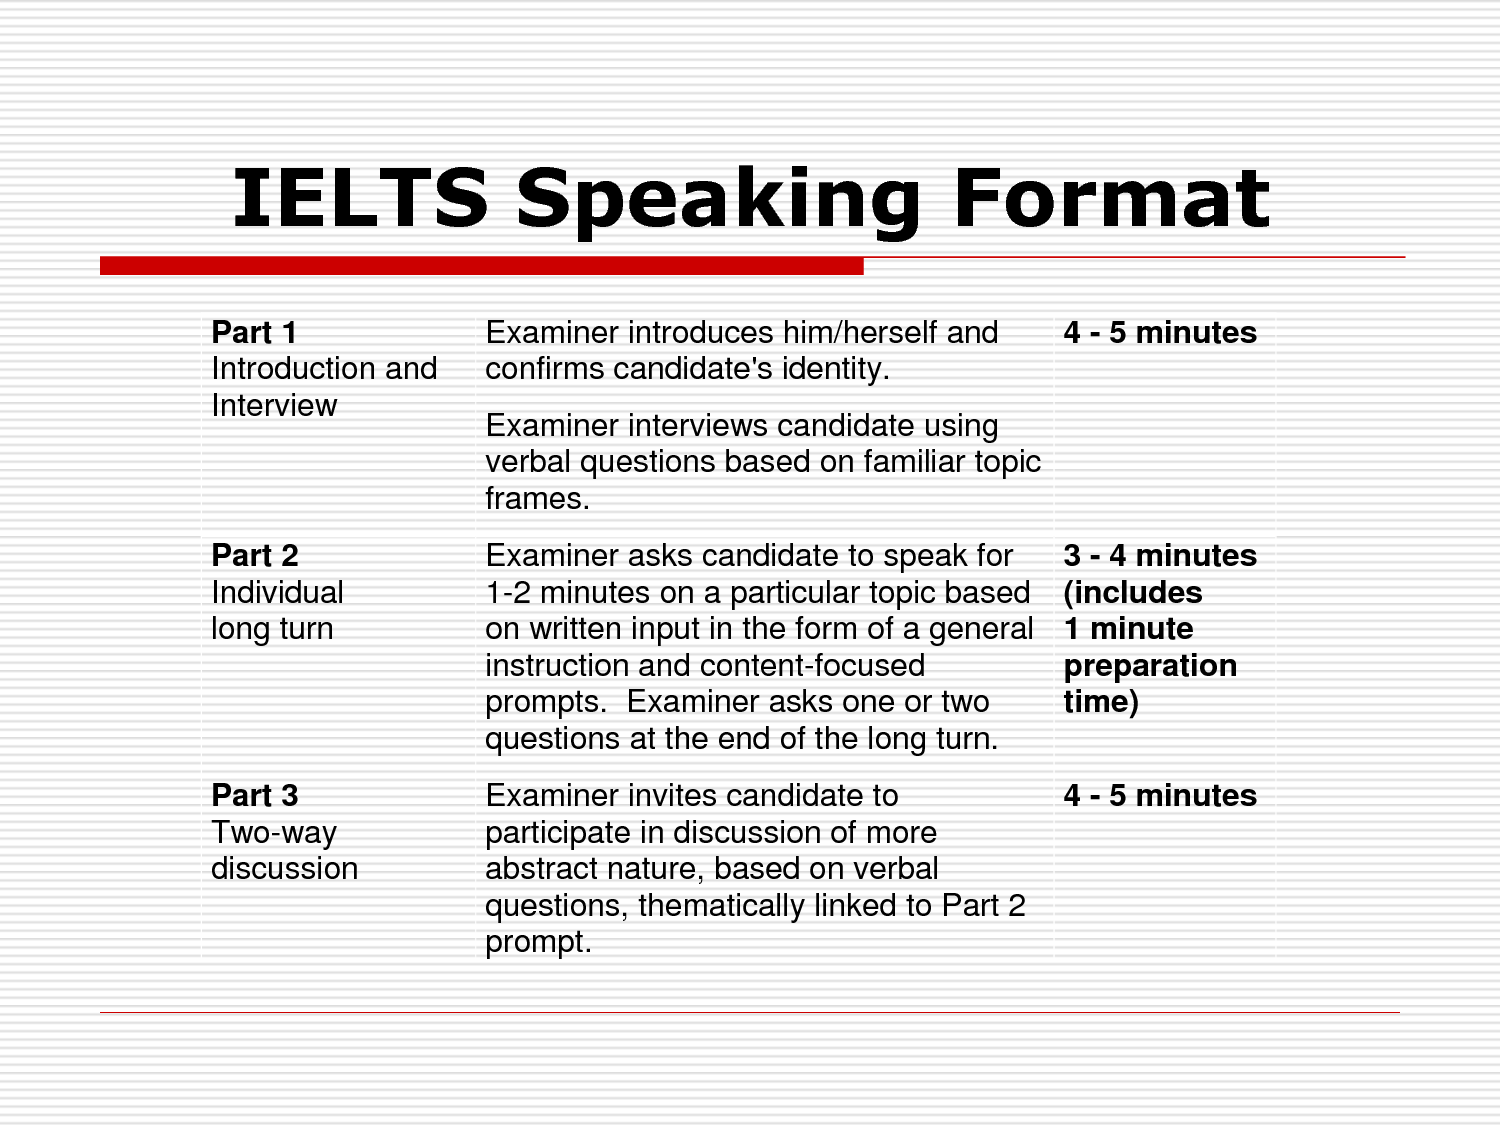 kinh nghiệm thi ielts speaking